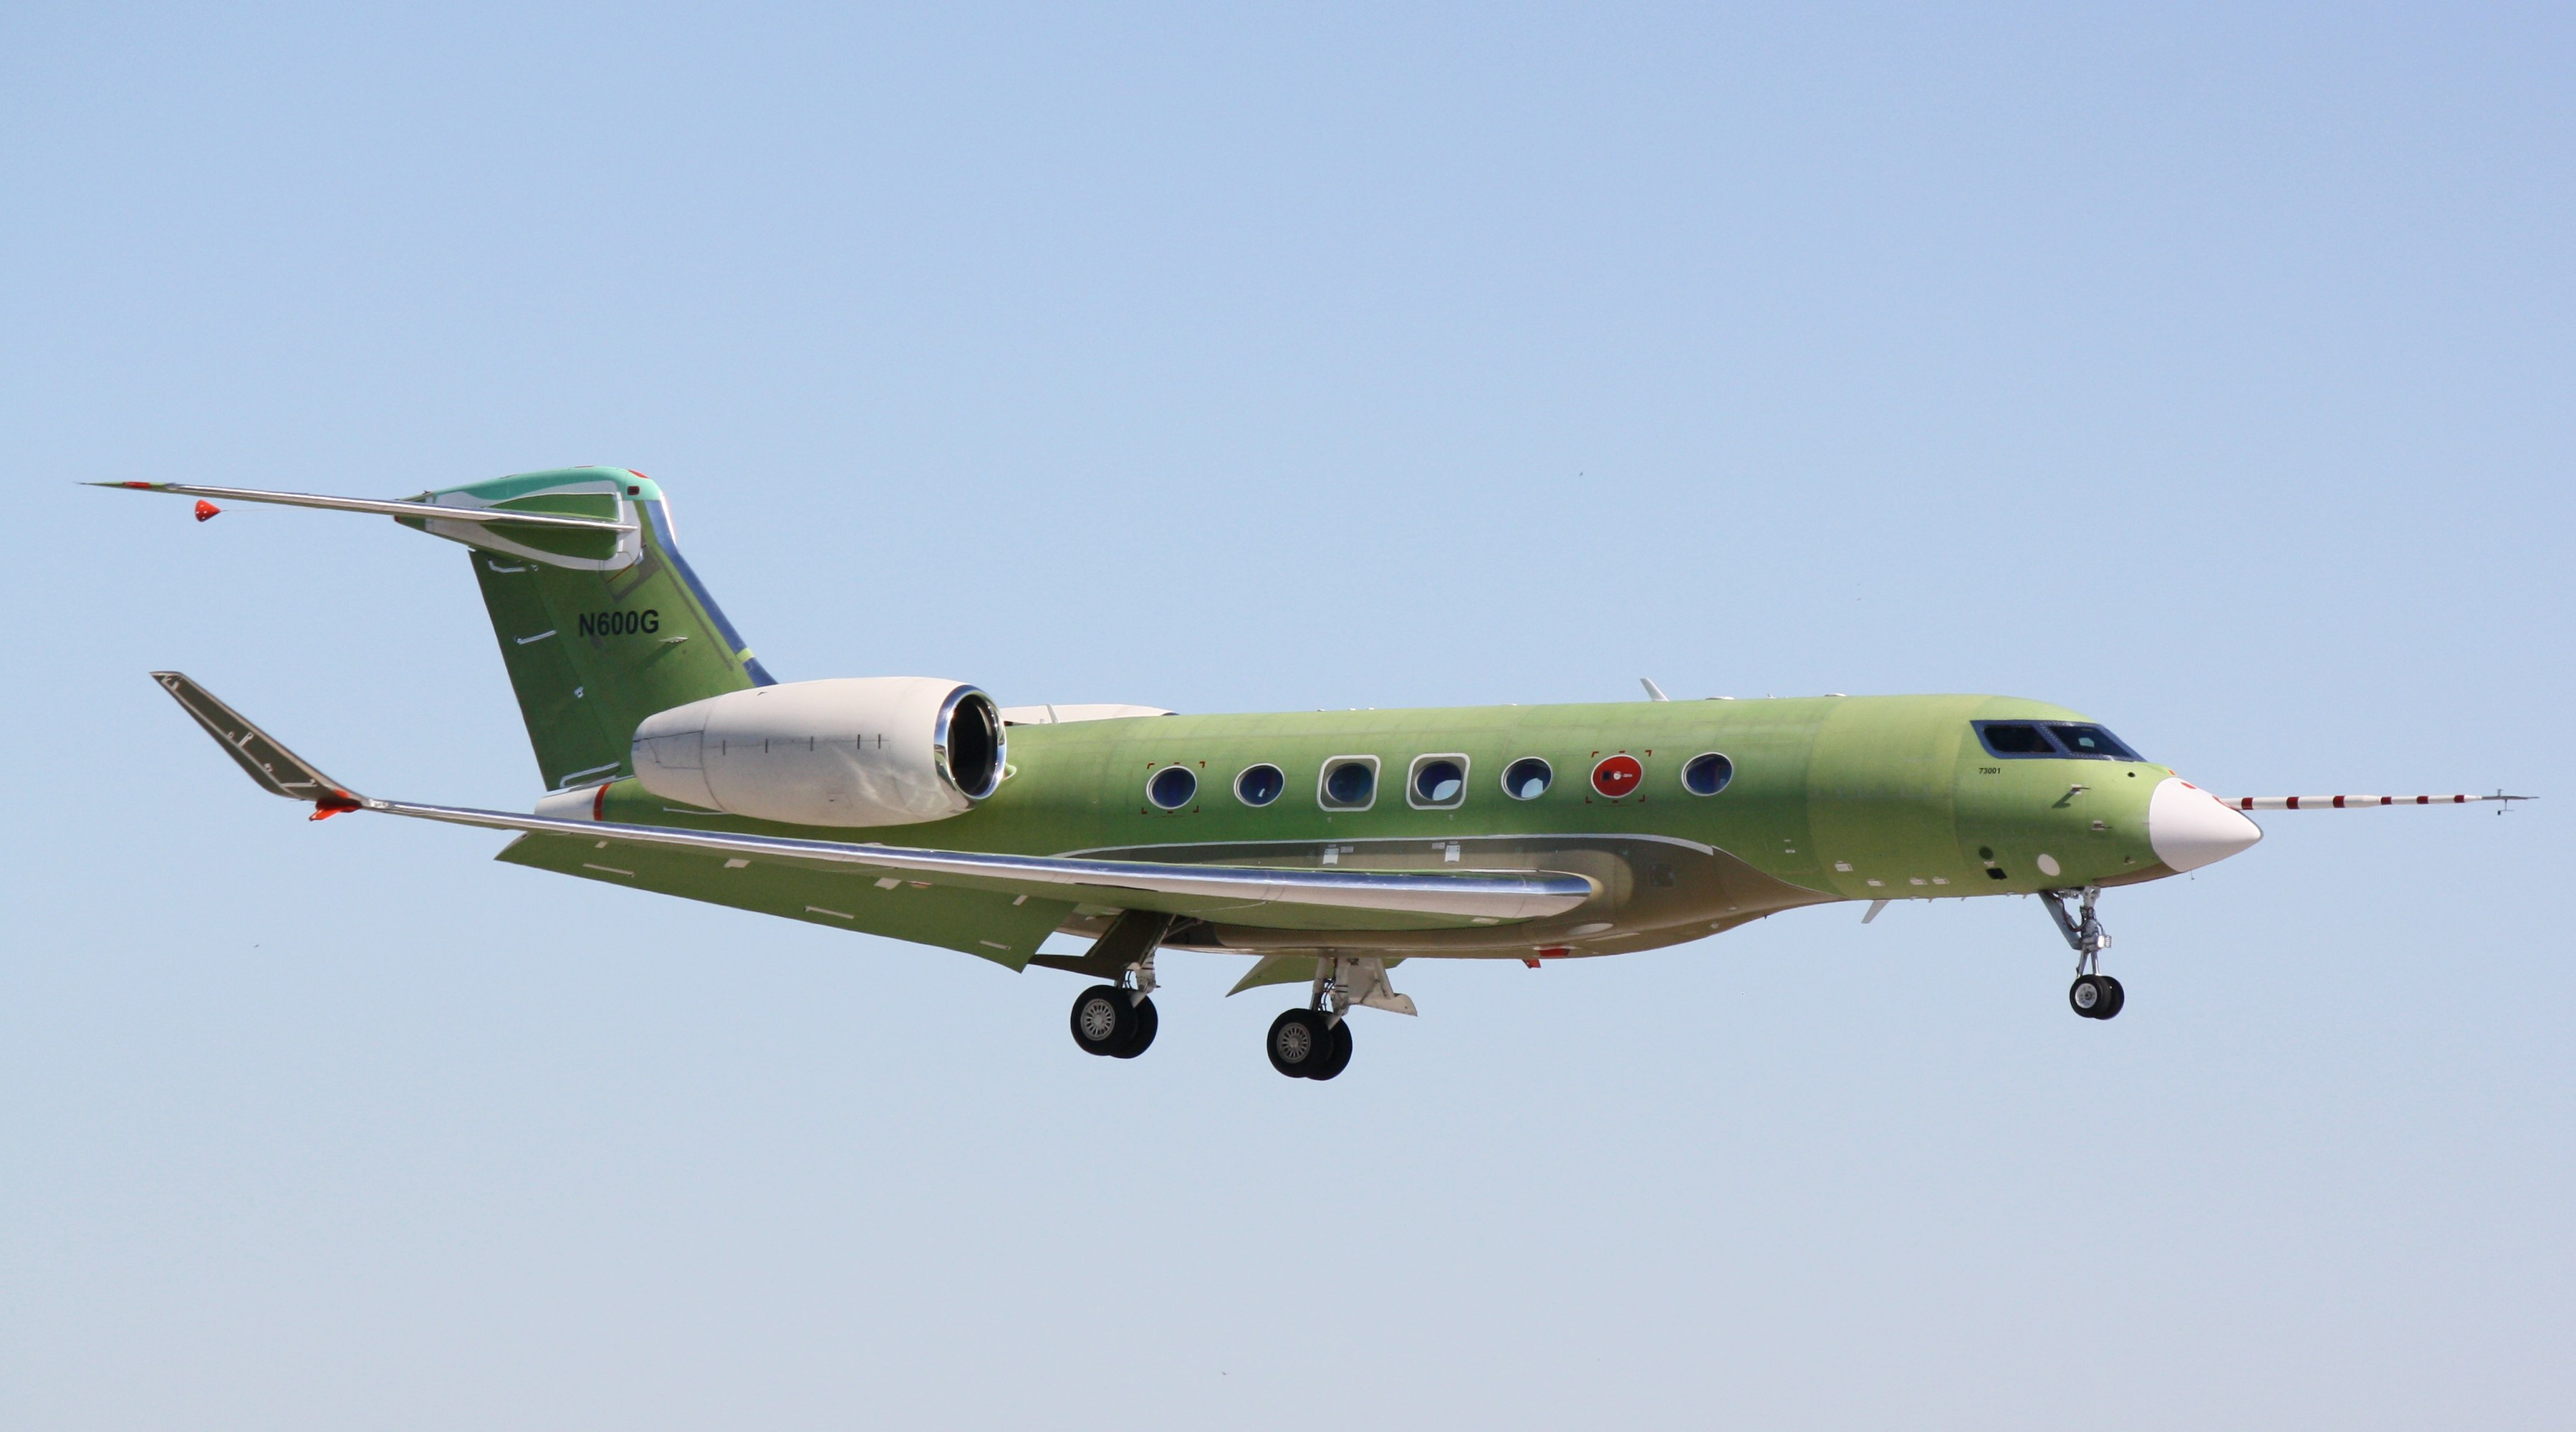 Gulfstream G500 / G600 - The complete information and online sale